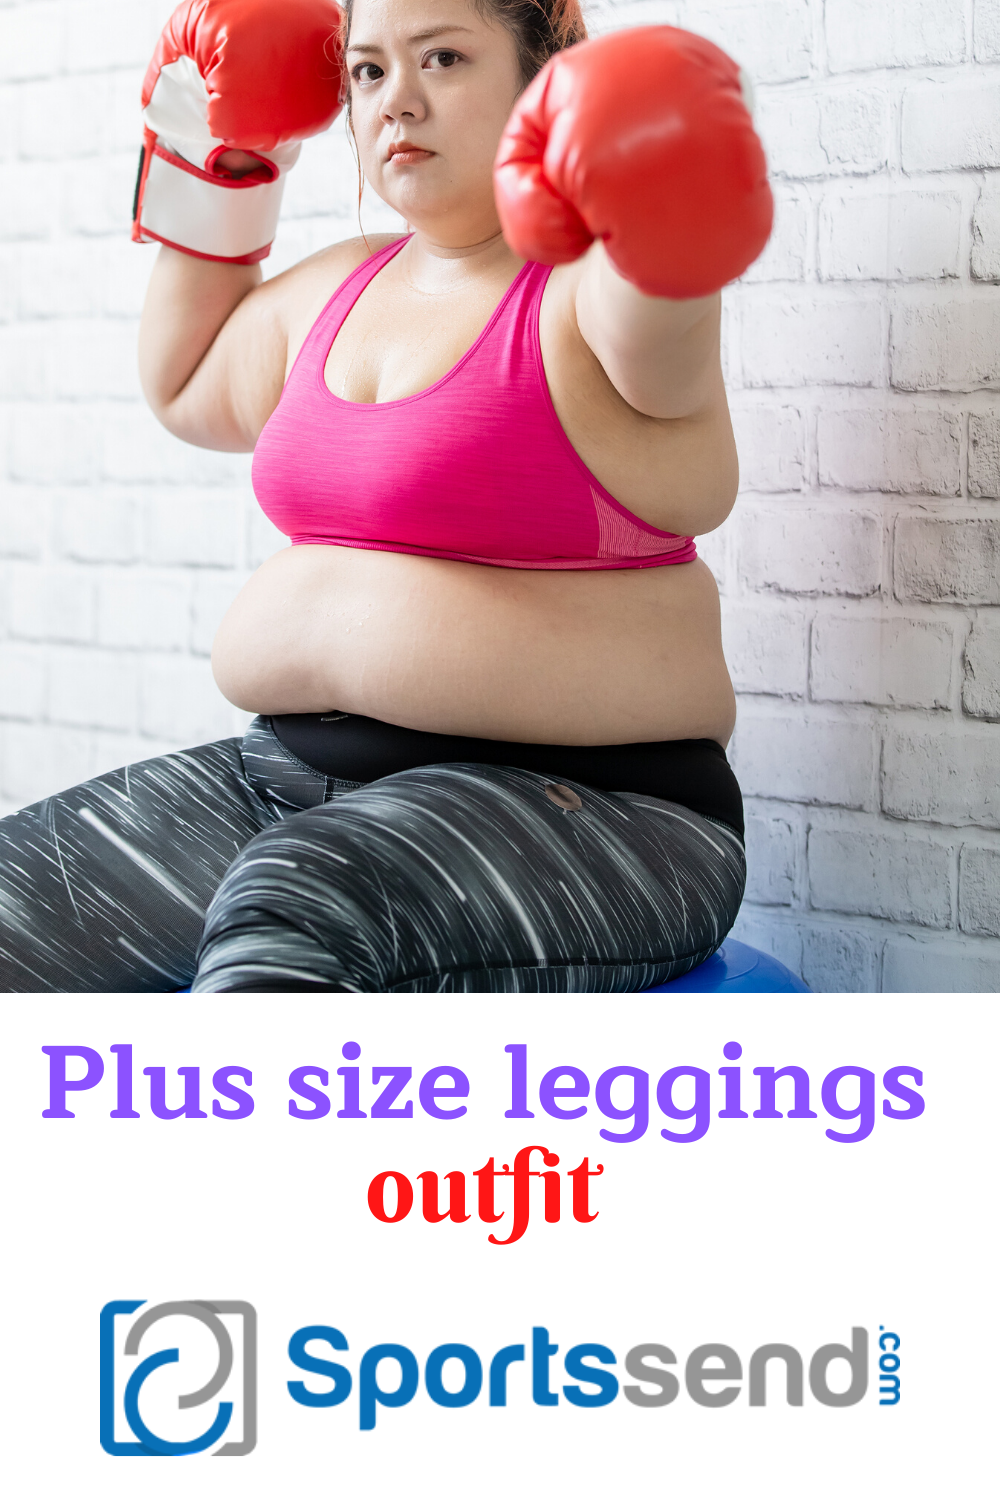 Photo of Plus size leggings outfit